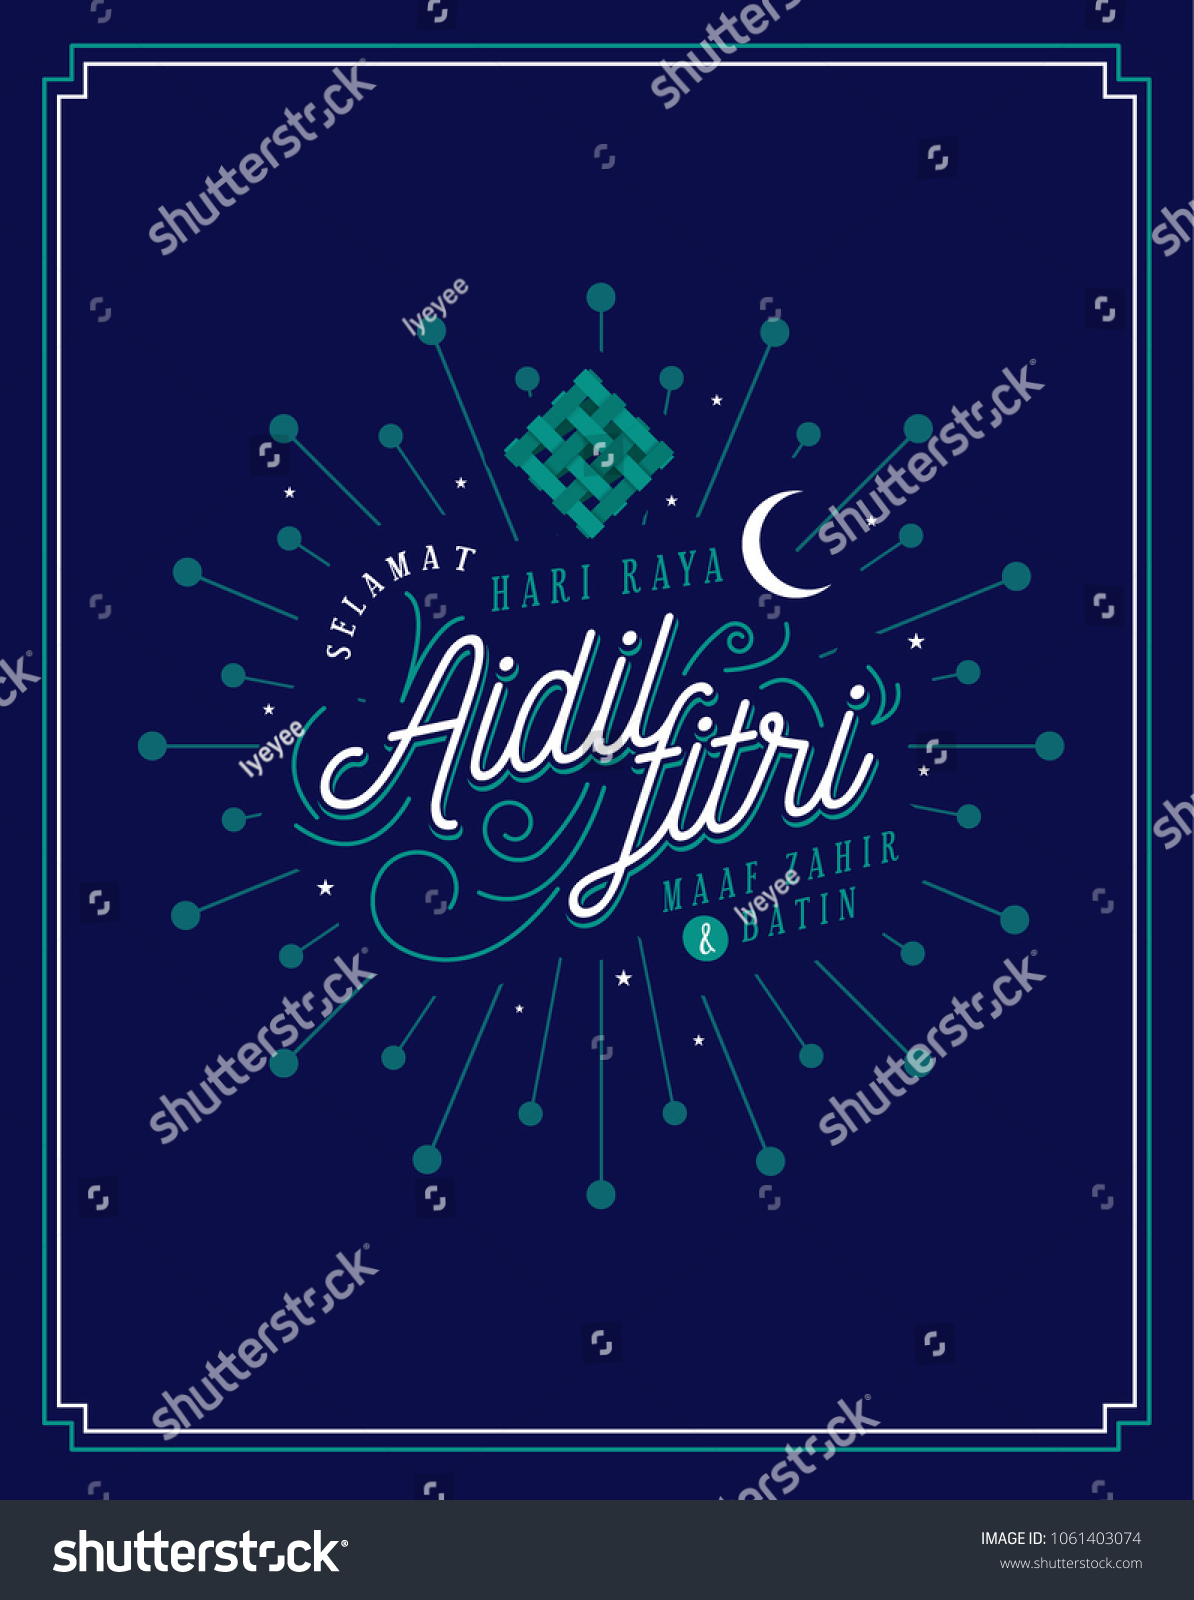 Typography Fireworks Hipster Hari Raya Greetings Stock Vector